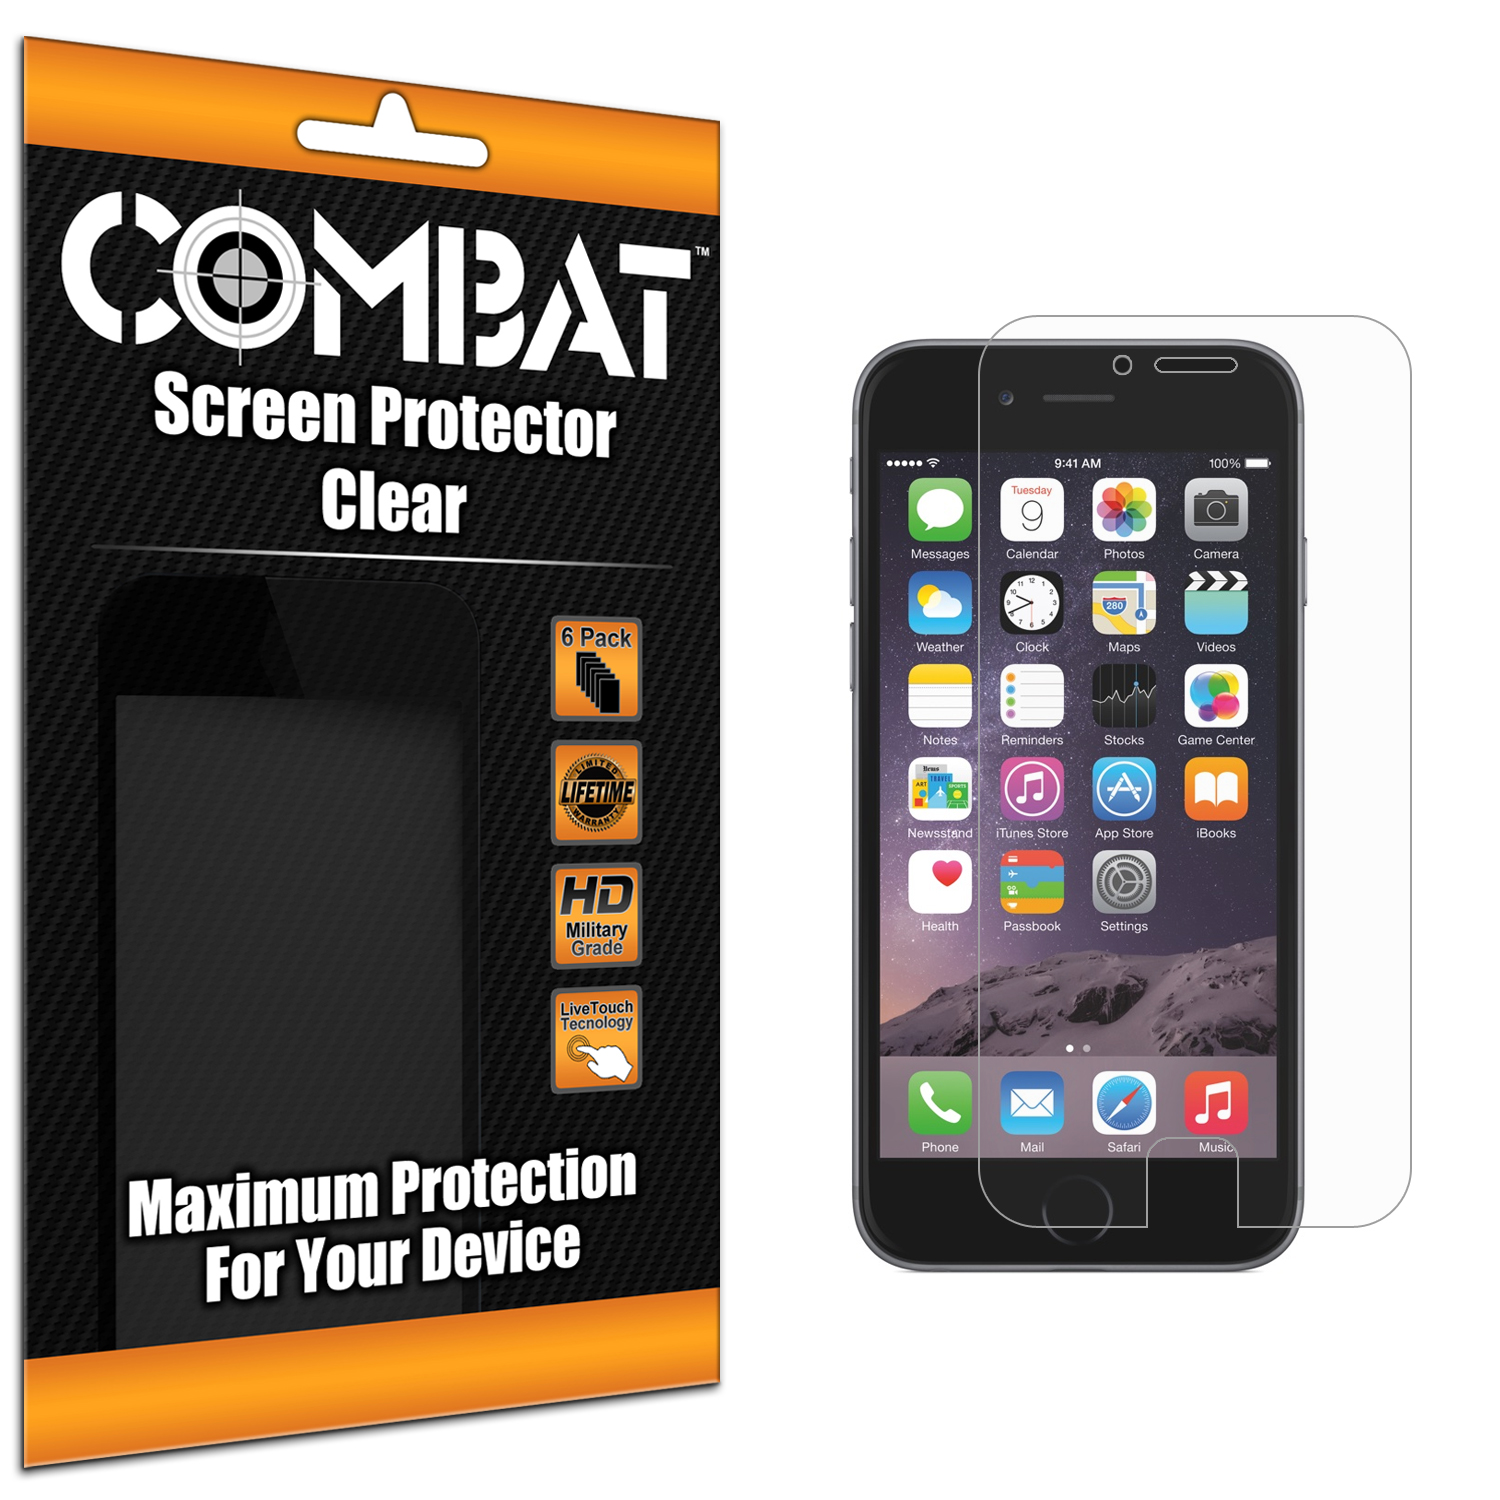 Apple iPhone 6 Plus Combat 6 Pack HD Clear Screen Protector